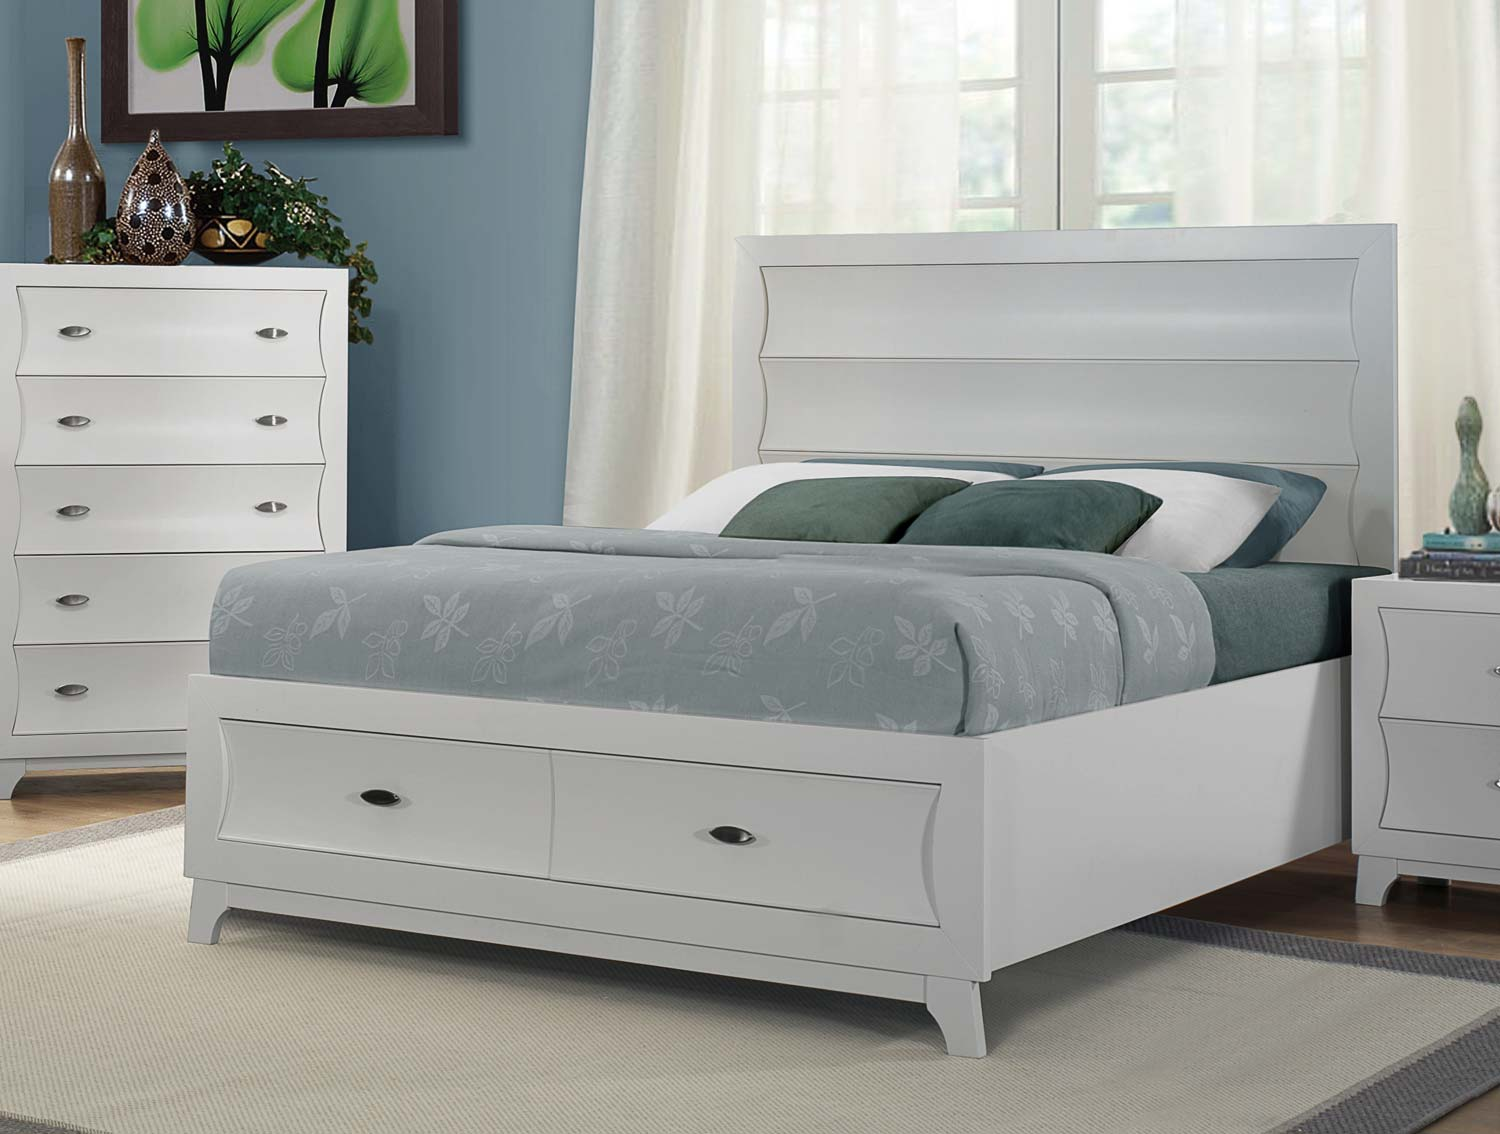 Homelegance Zandra Platform Storage Bed - White